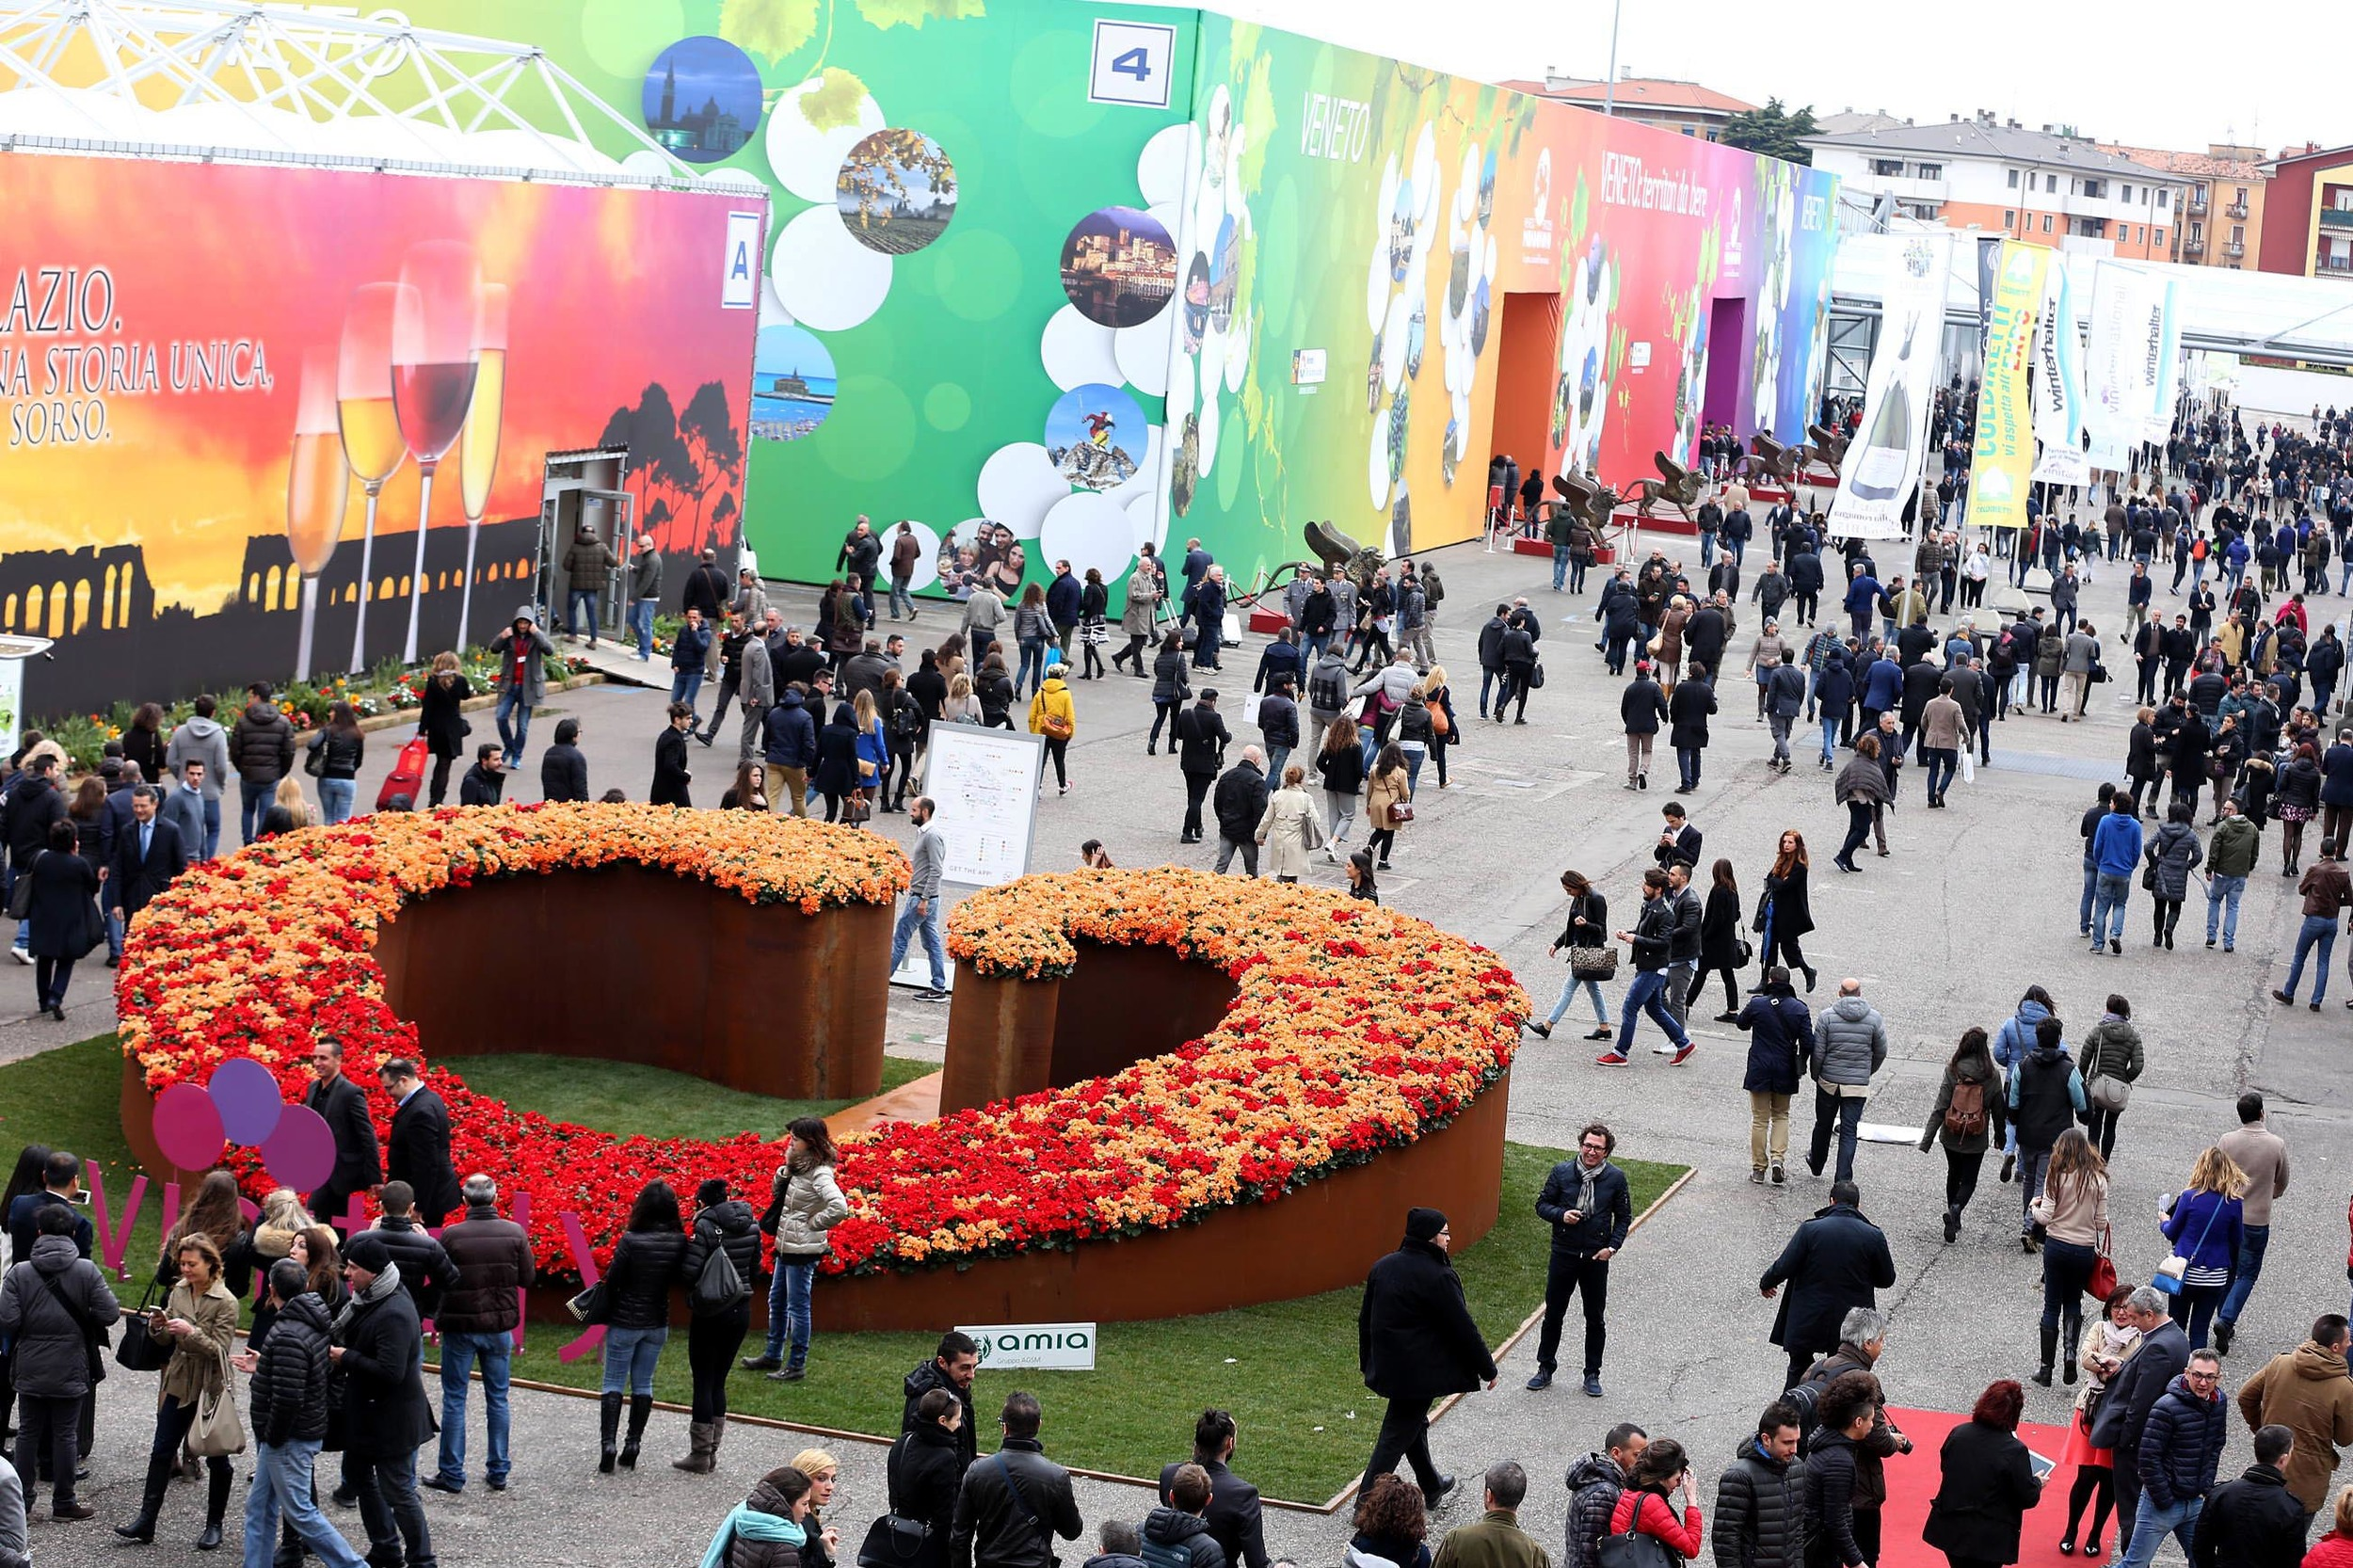 The colourful exhibition halls at Vinitaly are packed with wines from more than 4,000 wineries